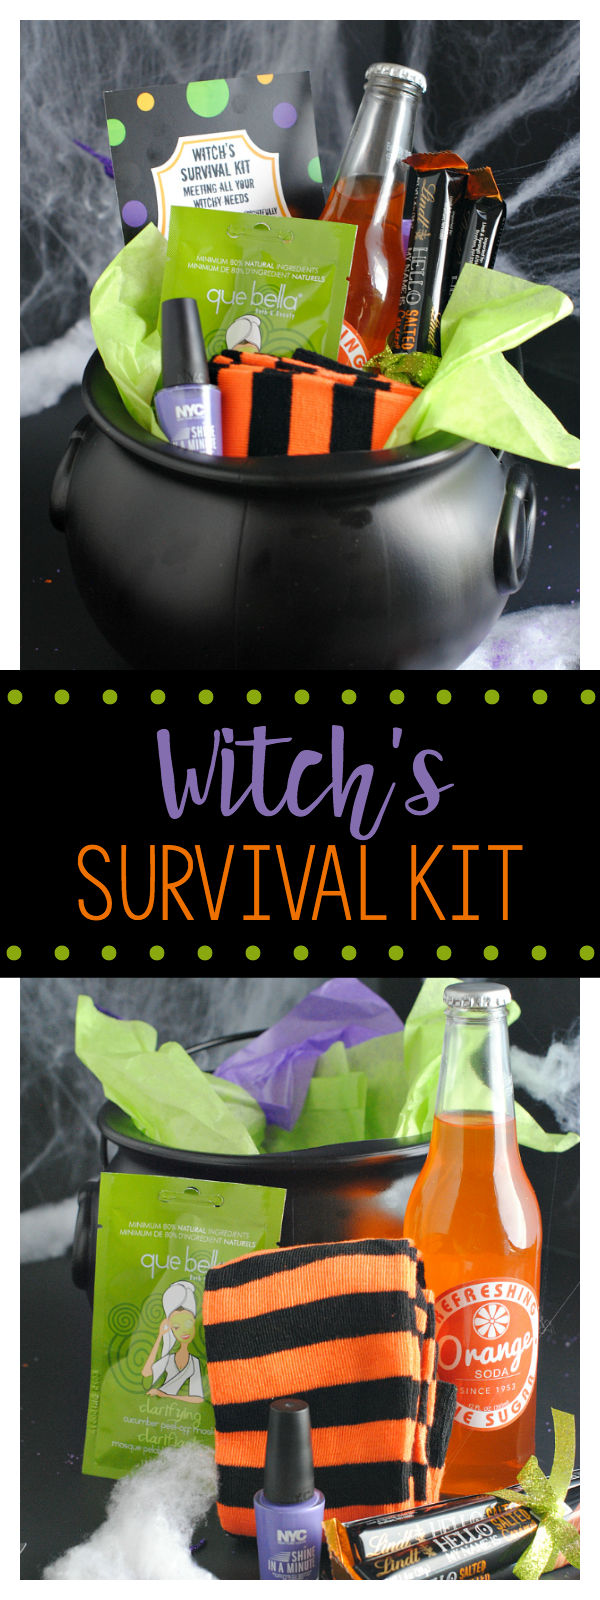 Witch's Survival Kit-Cute Gift Idea for Halloween